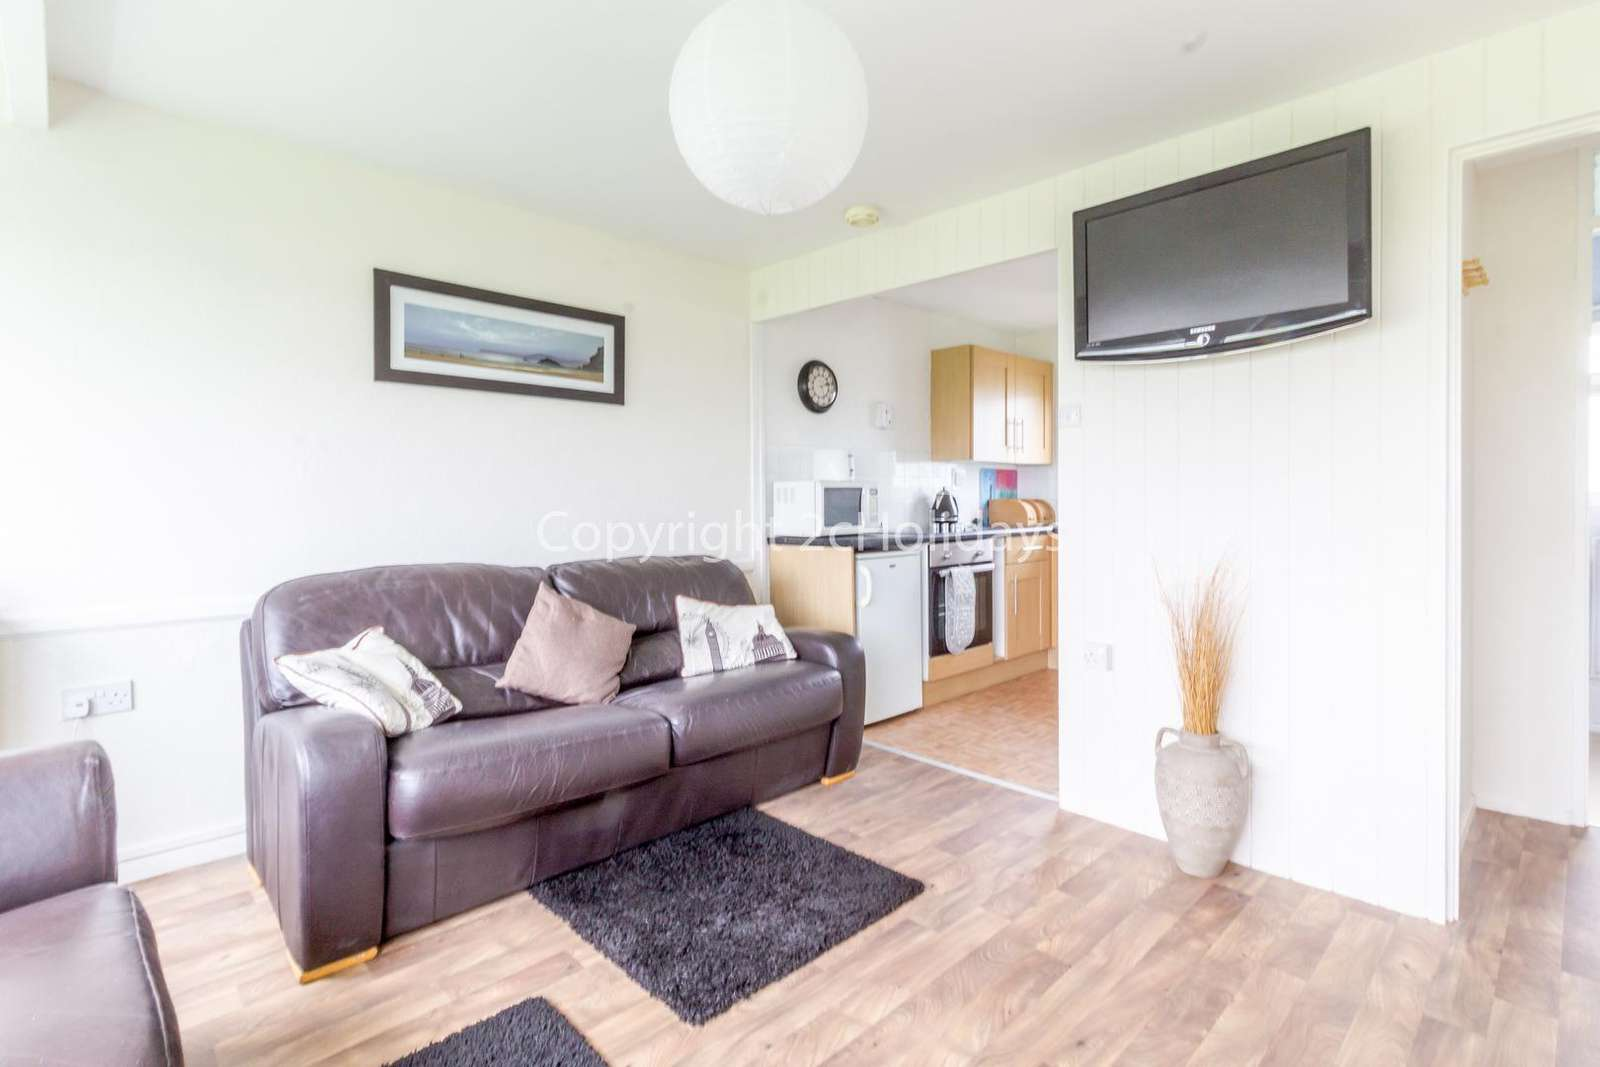 Spacious living area with a TV leading to the kitchen